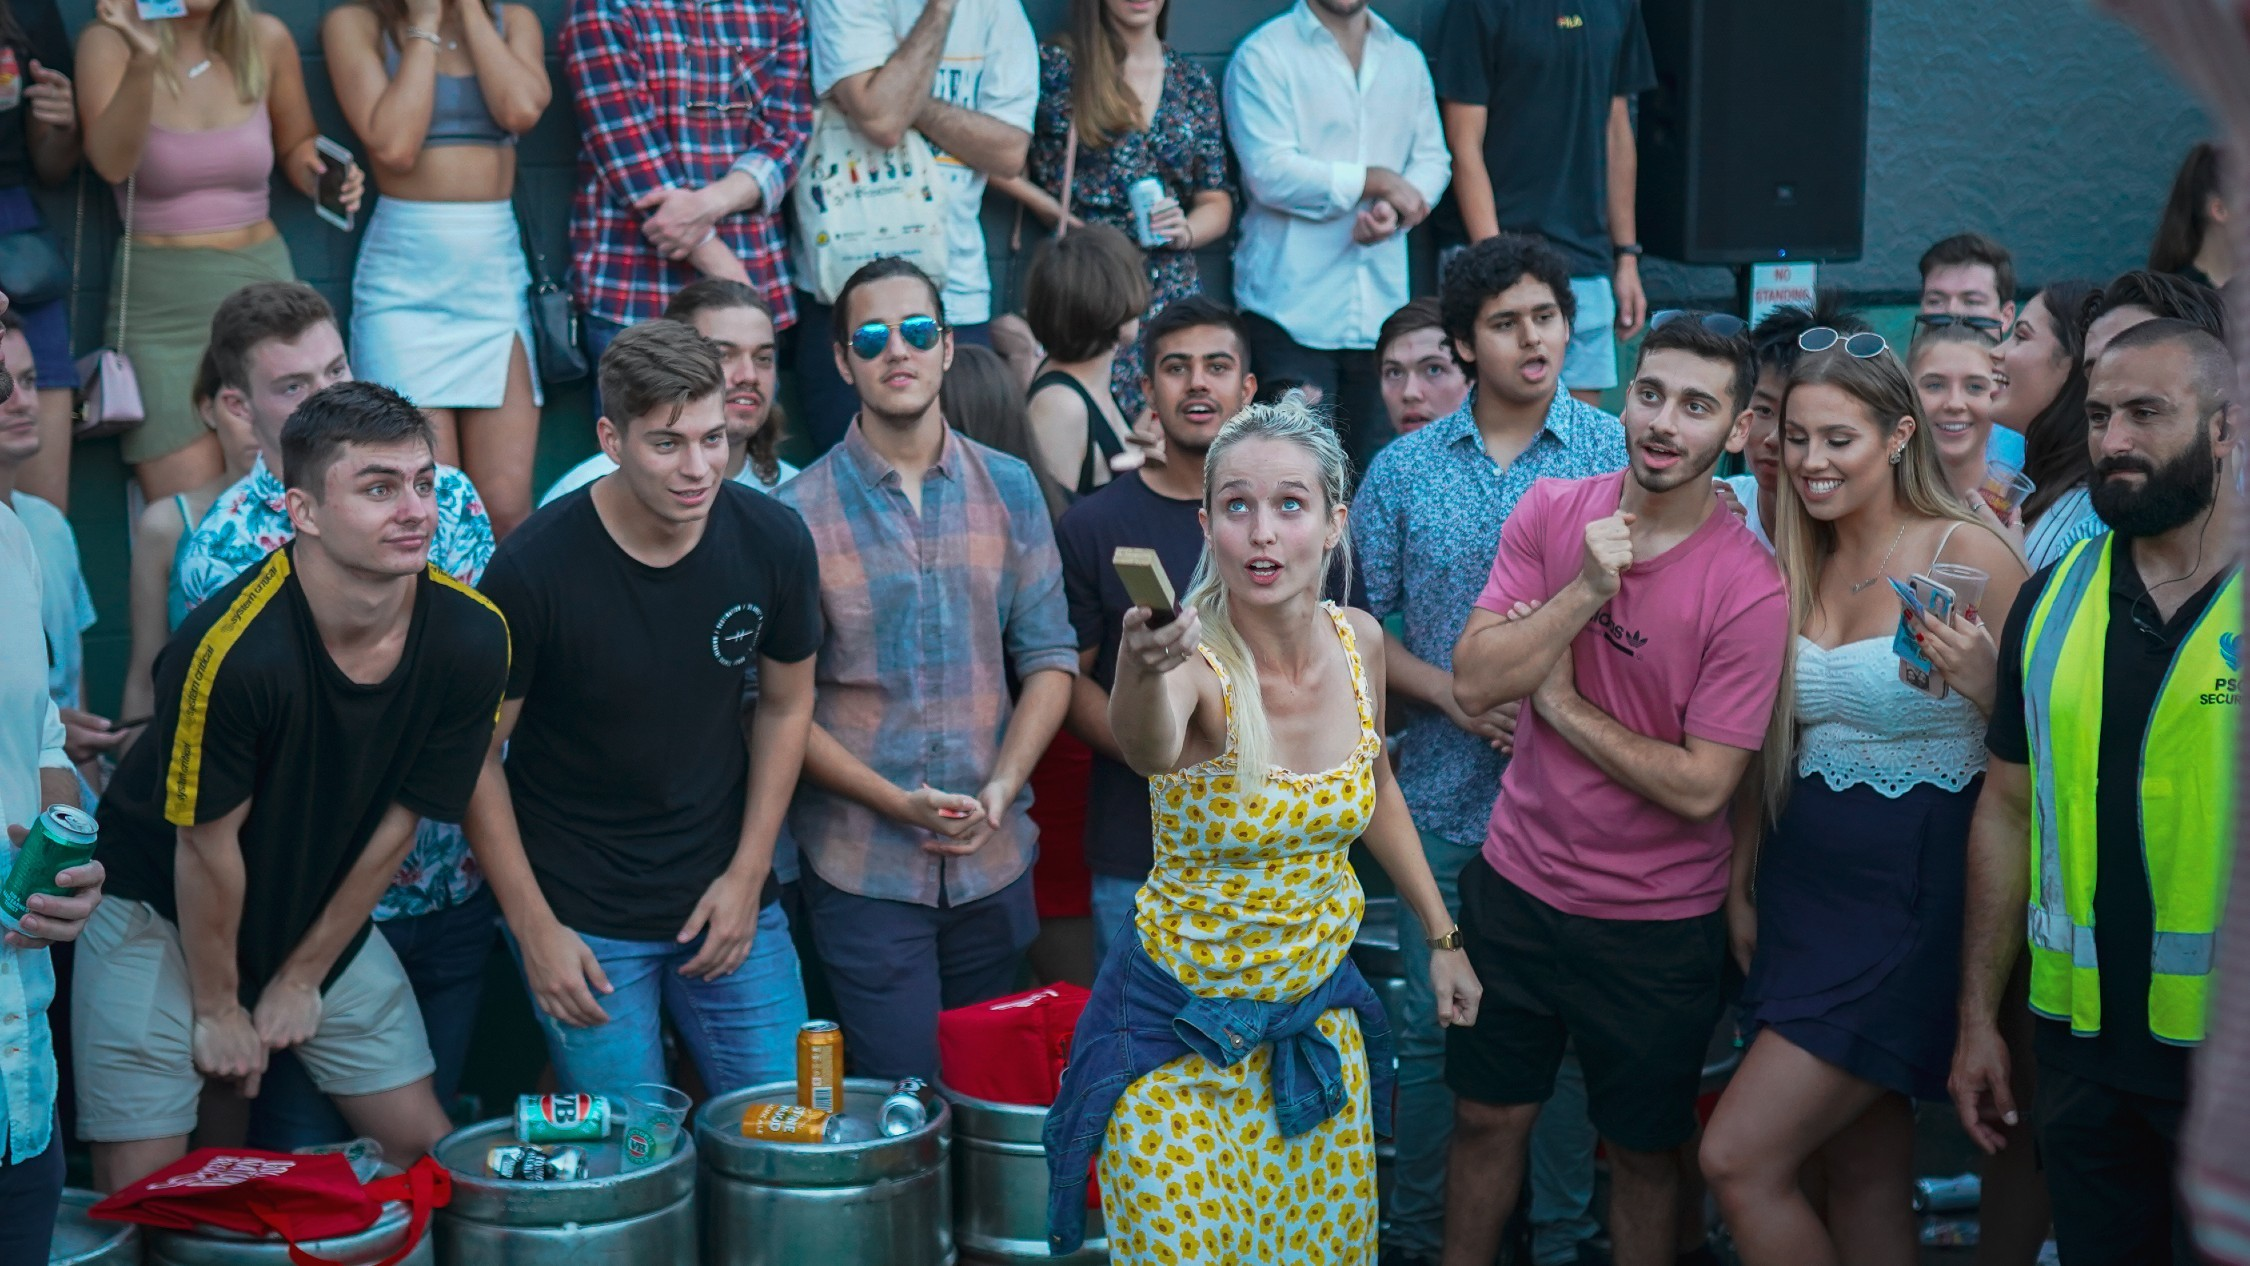 People play two-up, a woman in yellow dress flips coins as the crowd watches on.